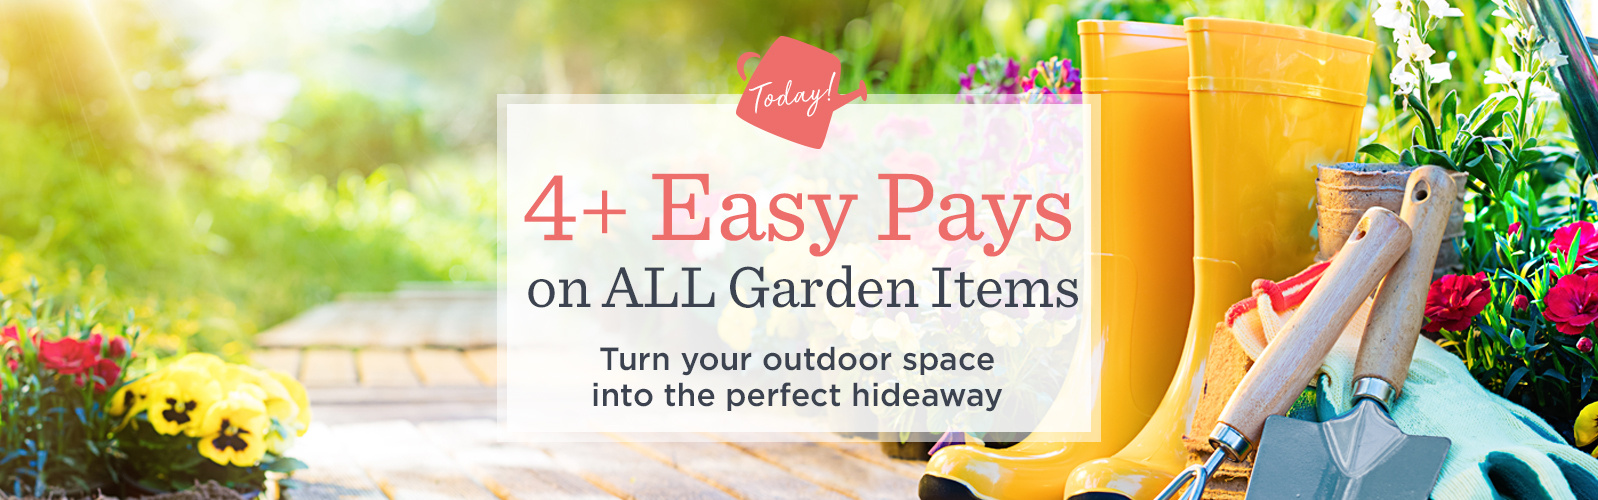 4+ Easy Pays on ALL Garden Items — Today! Turn your outdoor space into the perfect hideaway